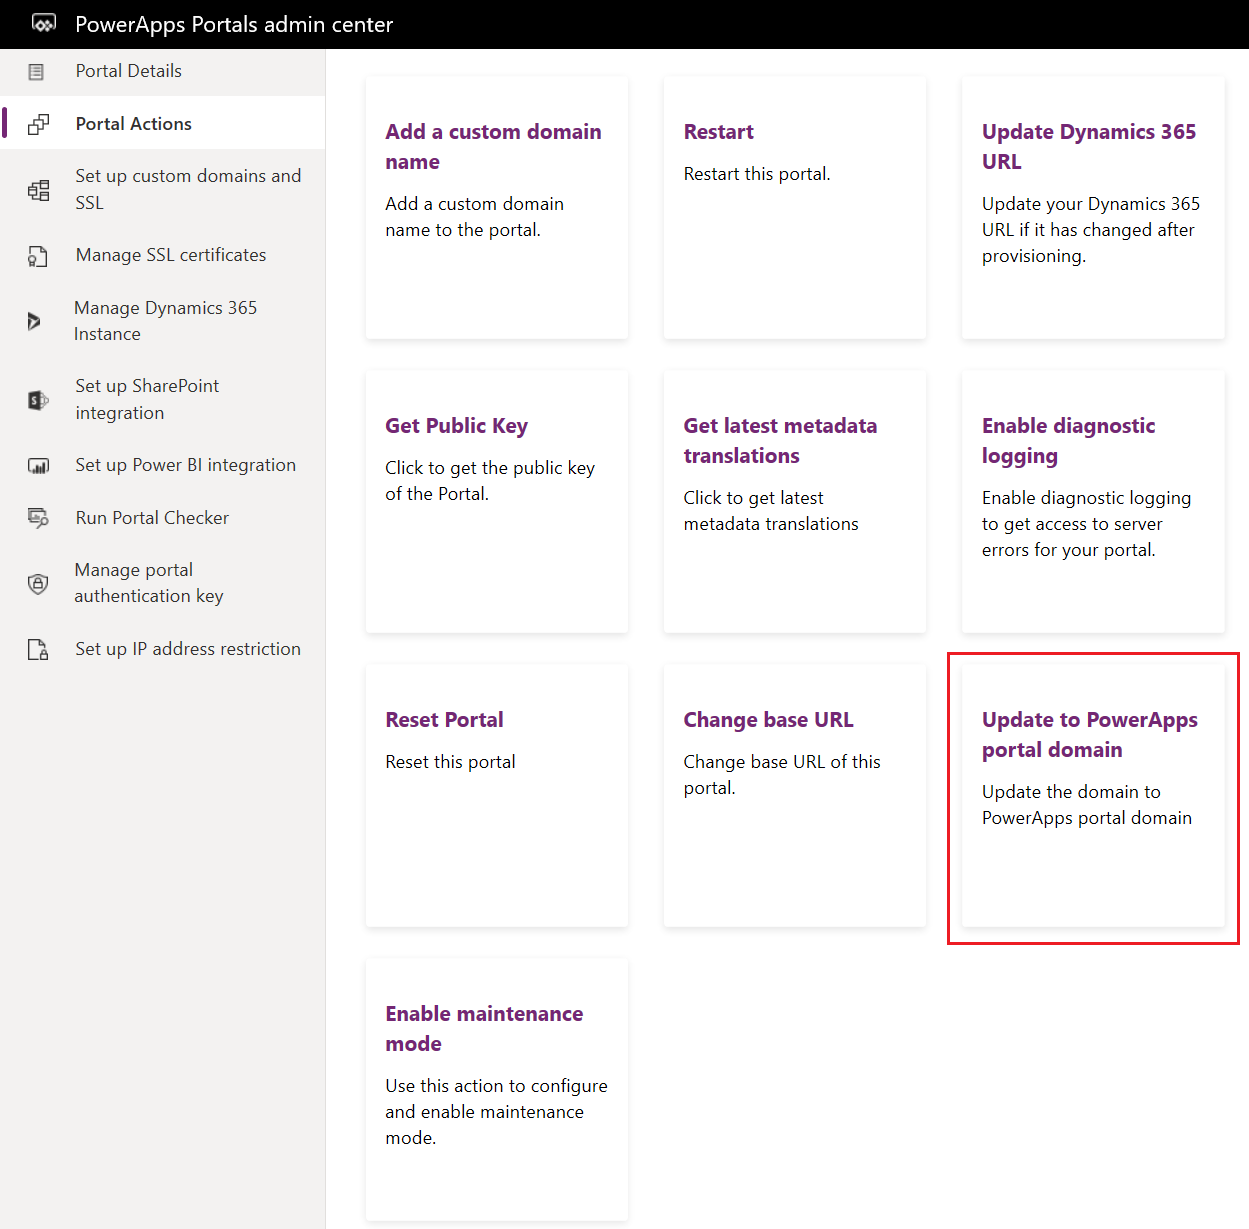 Update from Dynamics 365 domain to PowerApps Portals domain